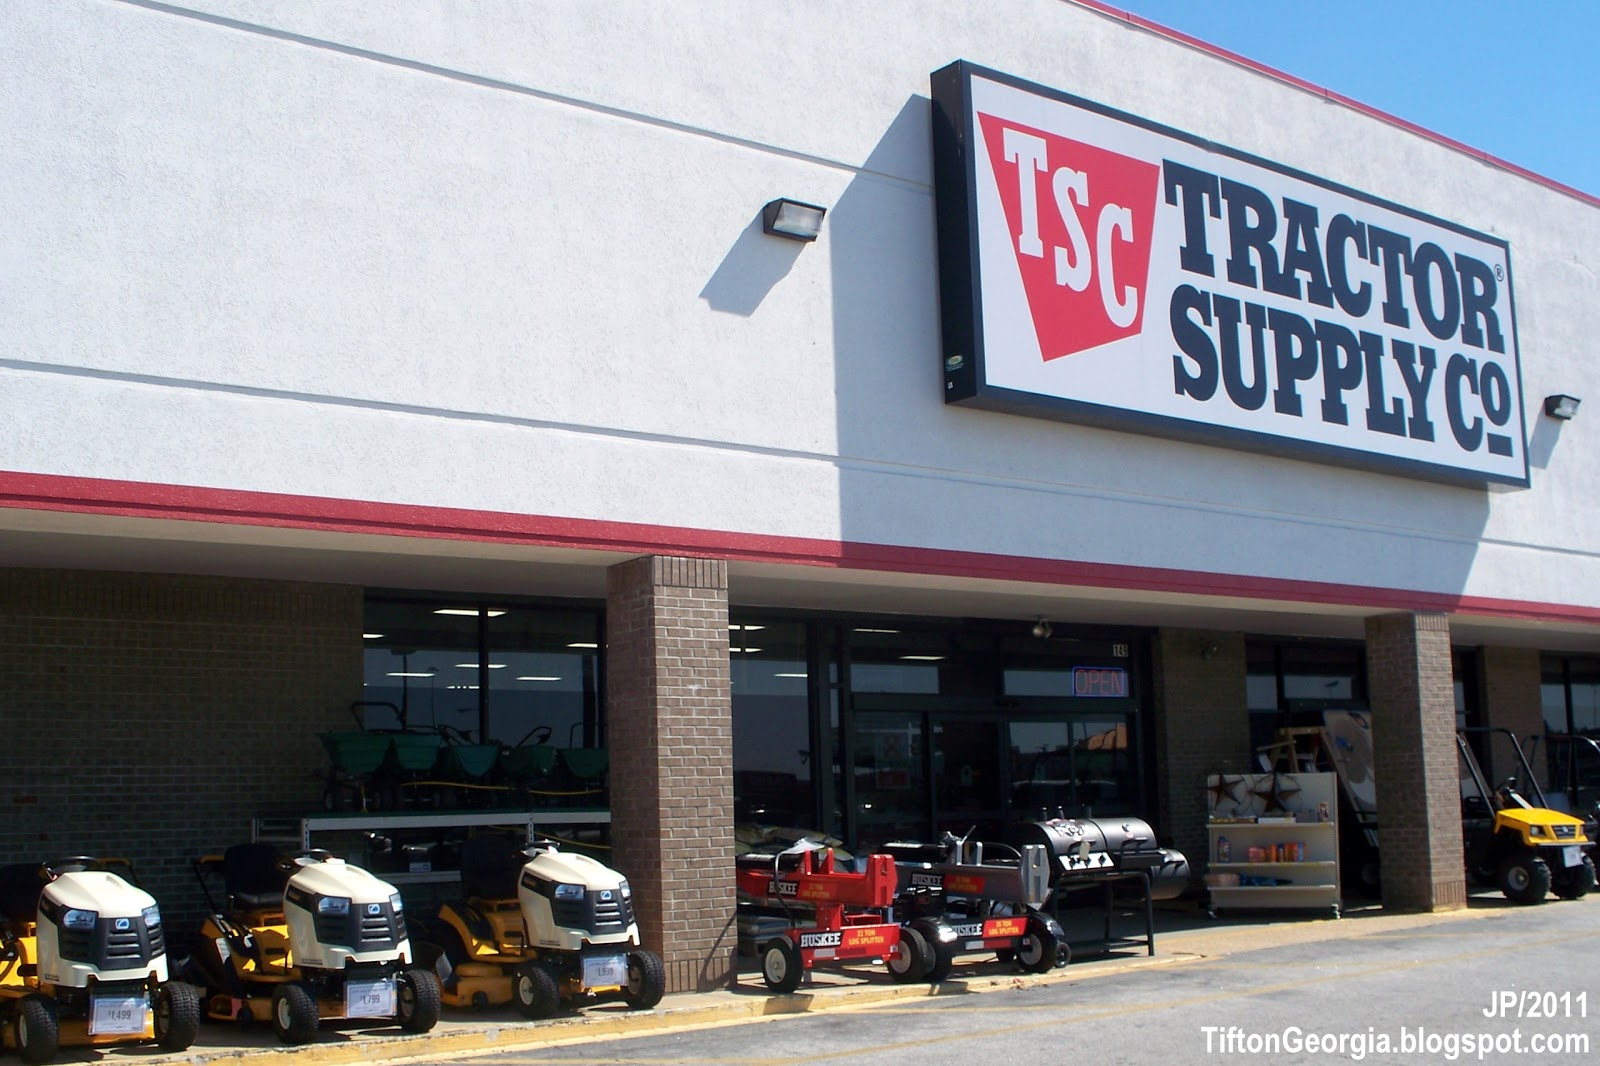 Welcome to the Tractor Supply Co. Customer Loyalty Survey. We value your candid feedback and appreciate you taking the time to complete our survey. Please enter the survey code printed at the bottom of your receipt in the boxes provided.